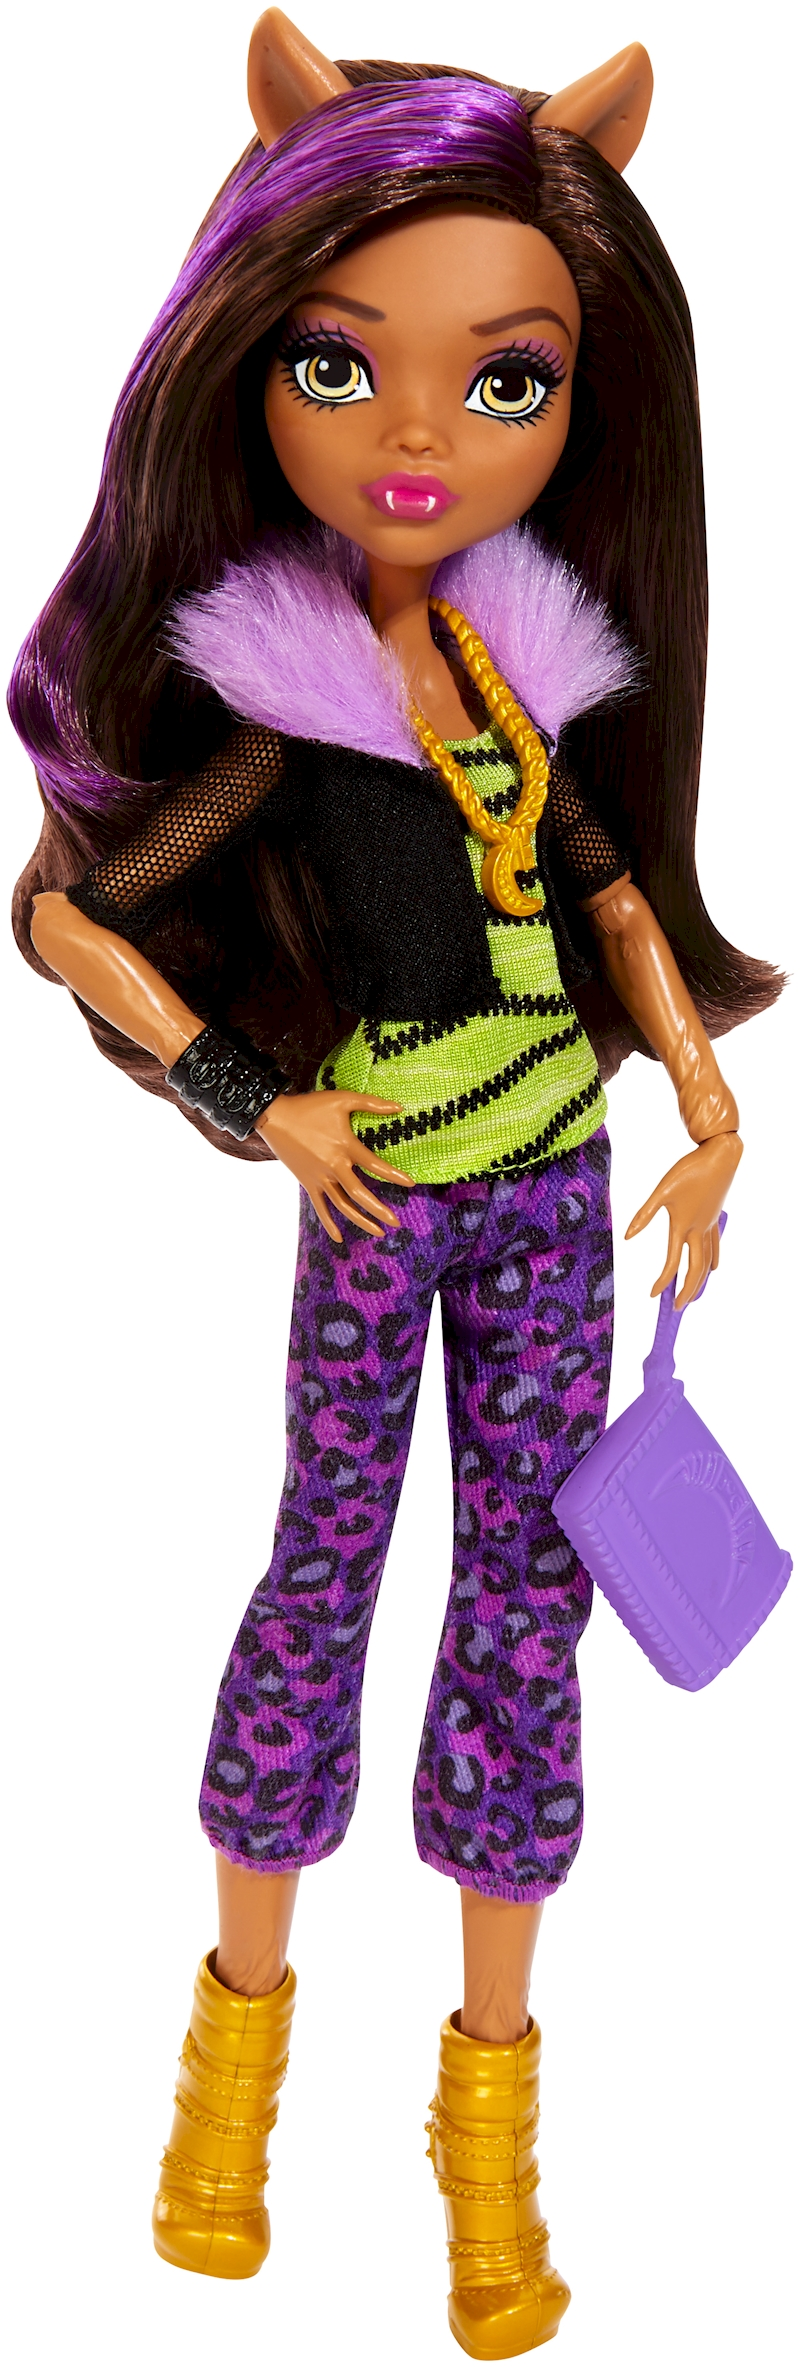 Monster High Todschicke Monsterschulerin Clawdeen